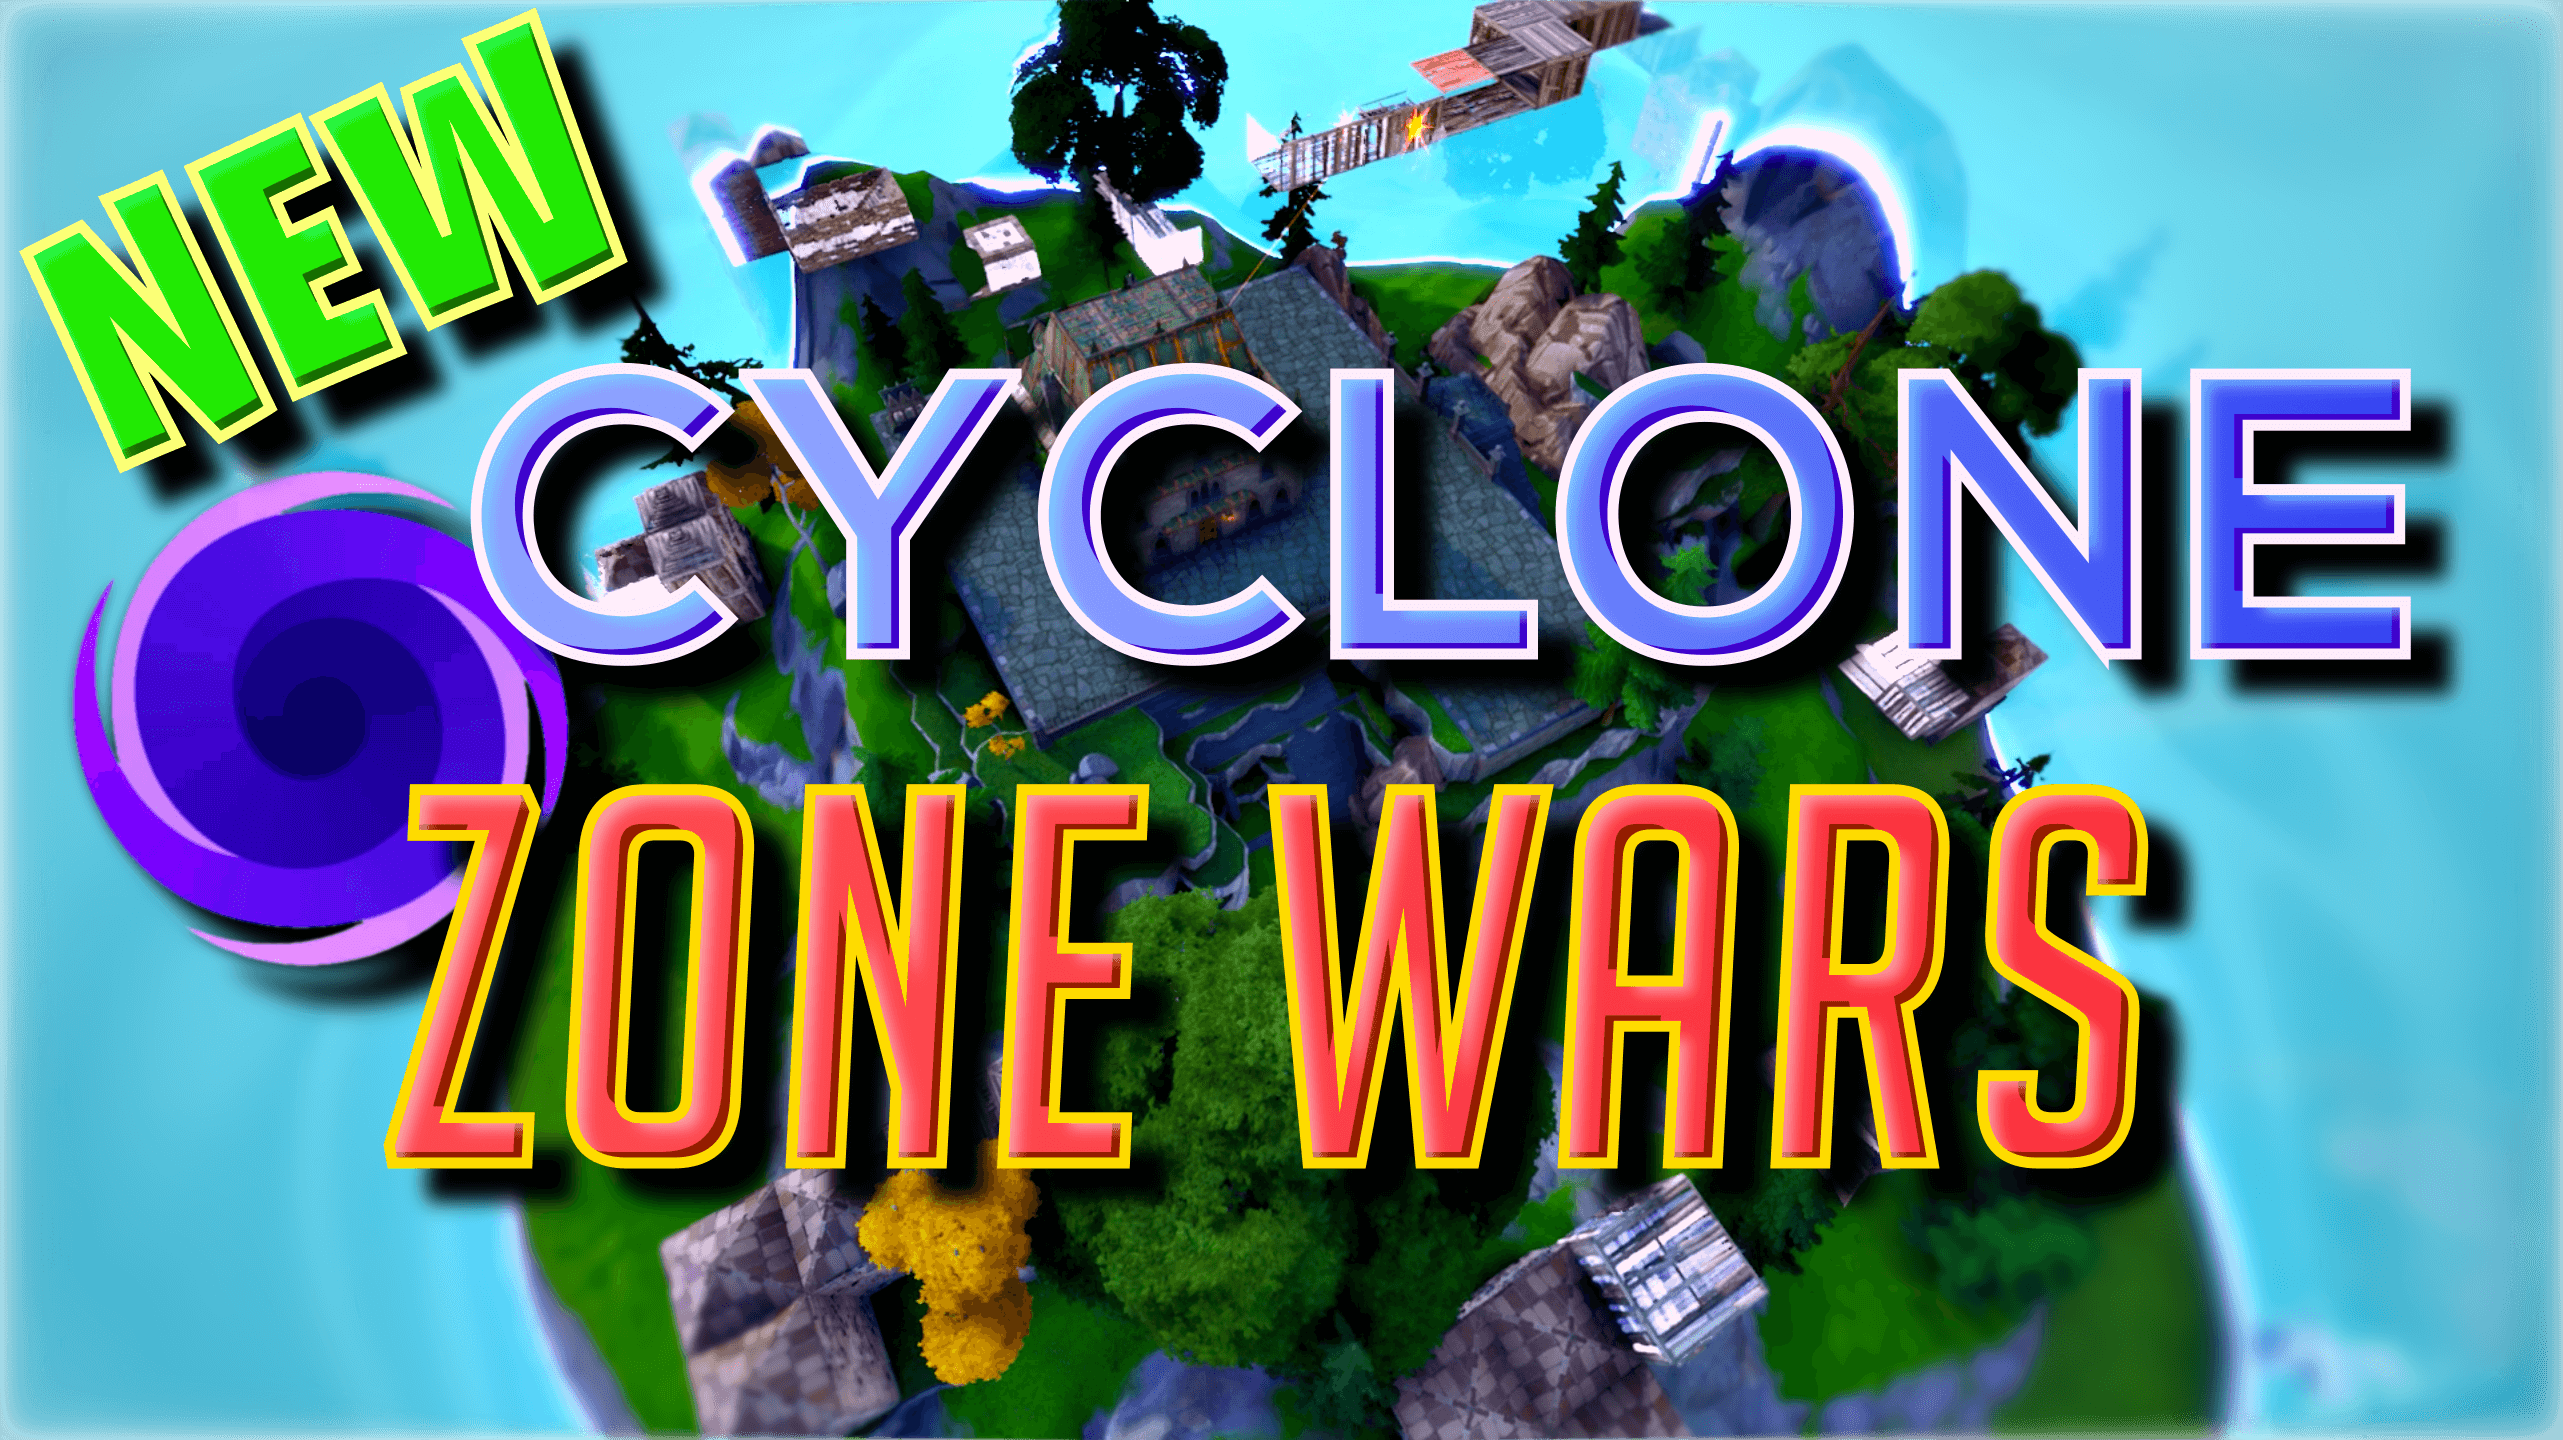 ᄋCYCLONE ZONE WARS ϟ SOLO